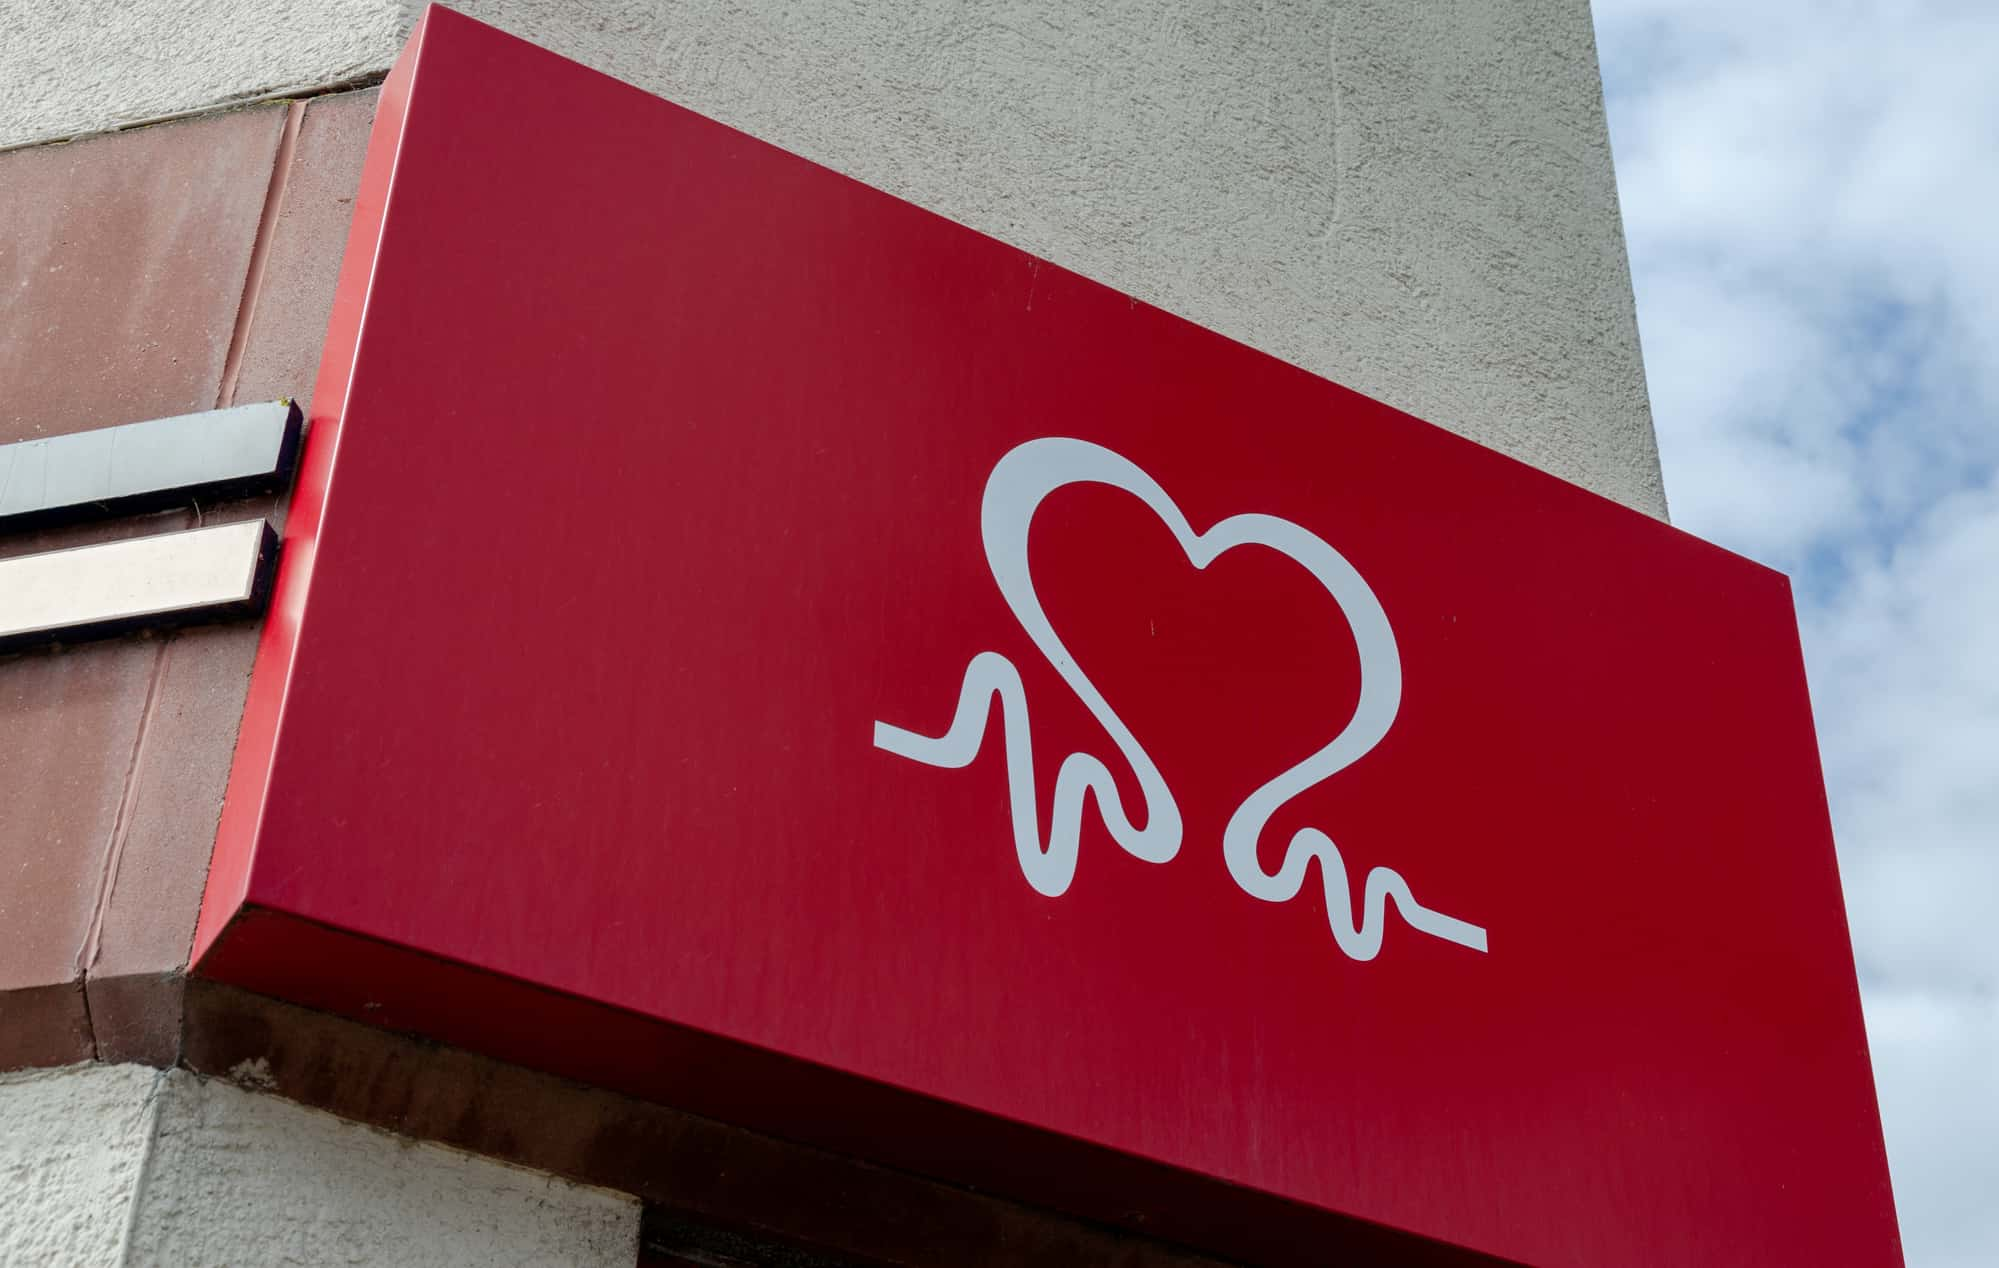 British Heart Foundation named 'greenest' charity retailer